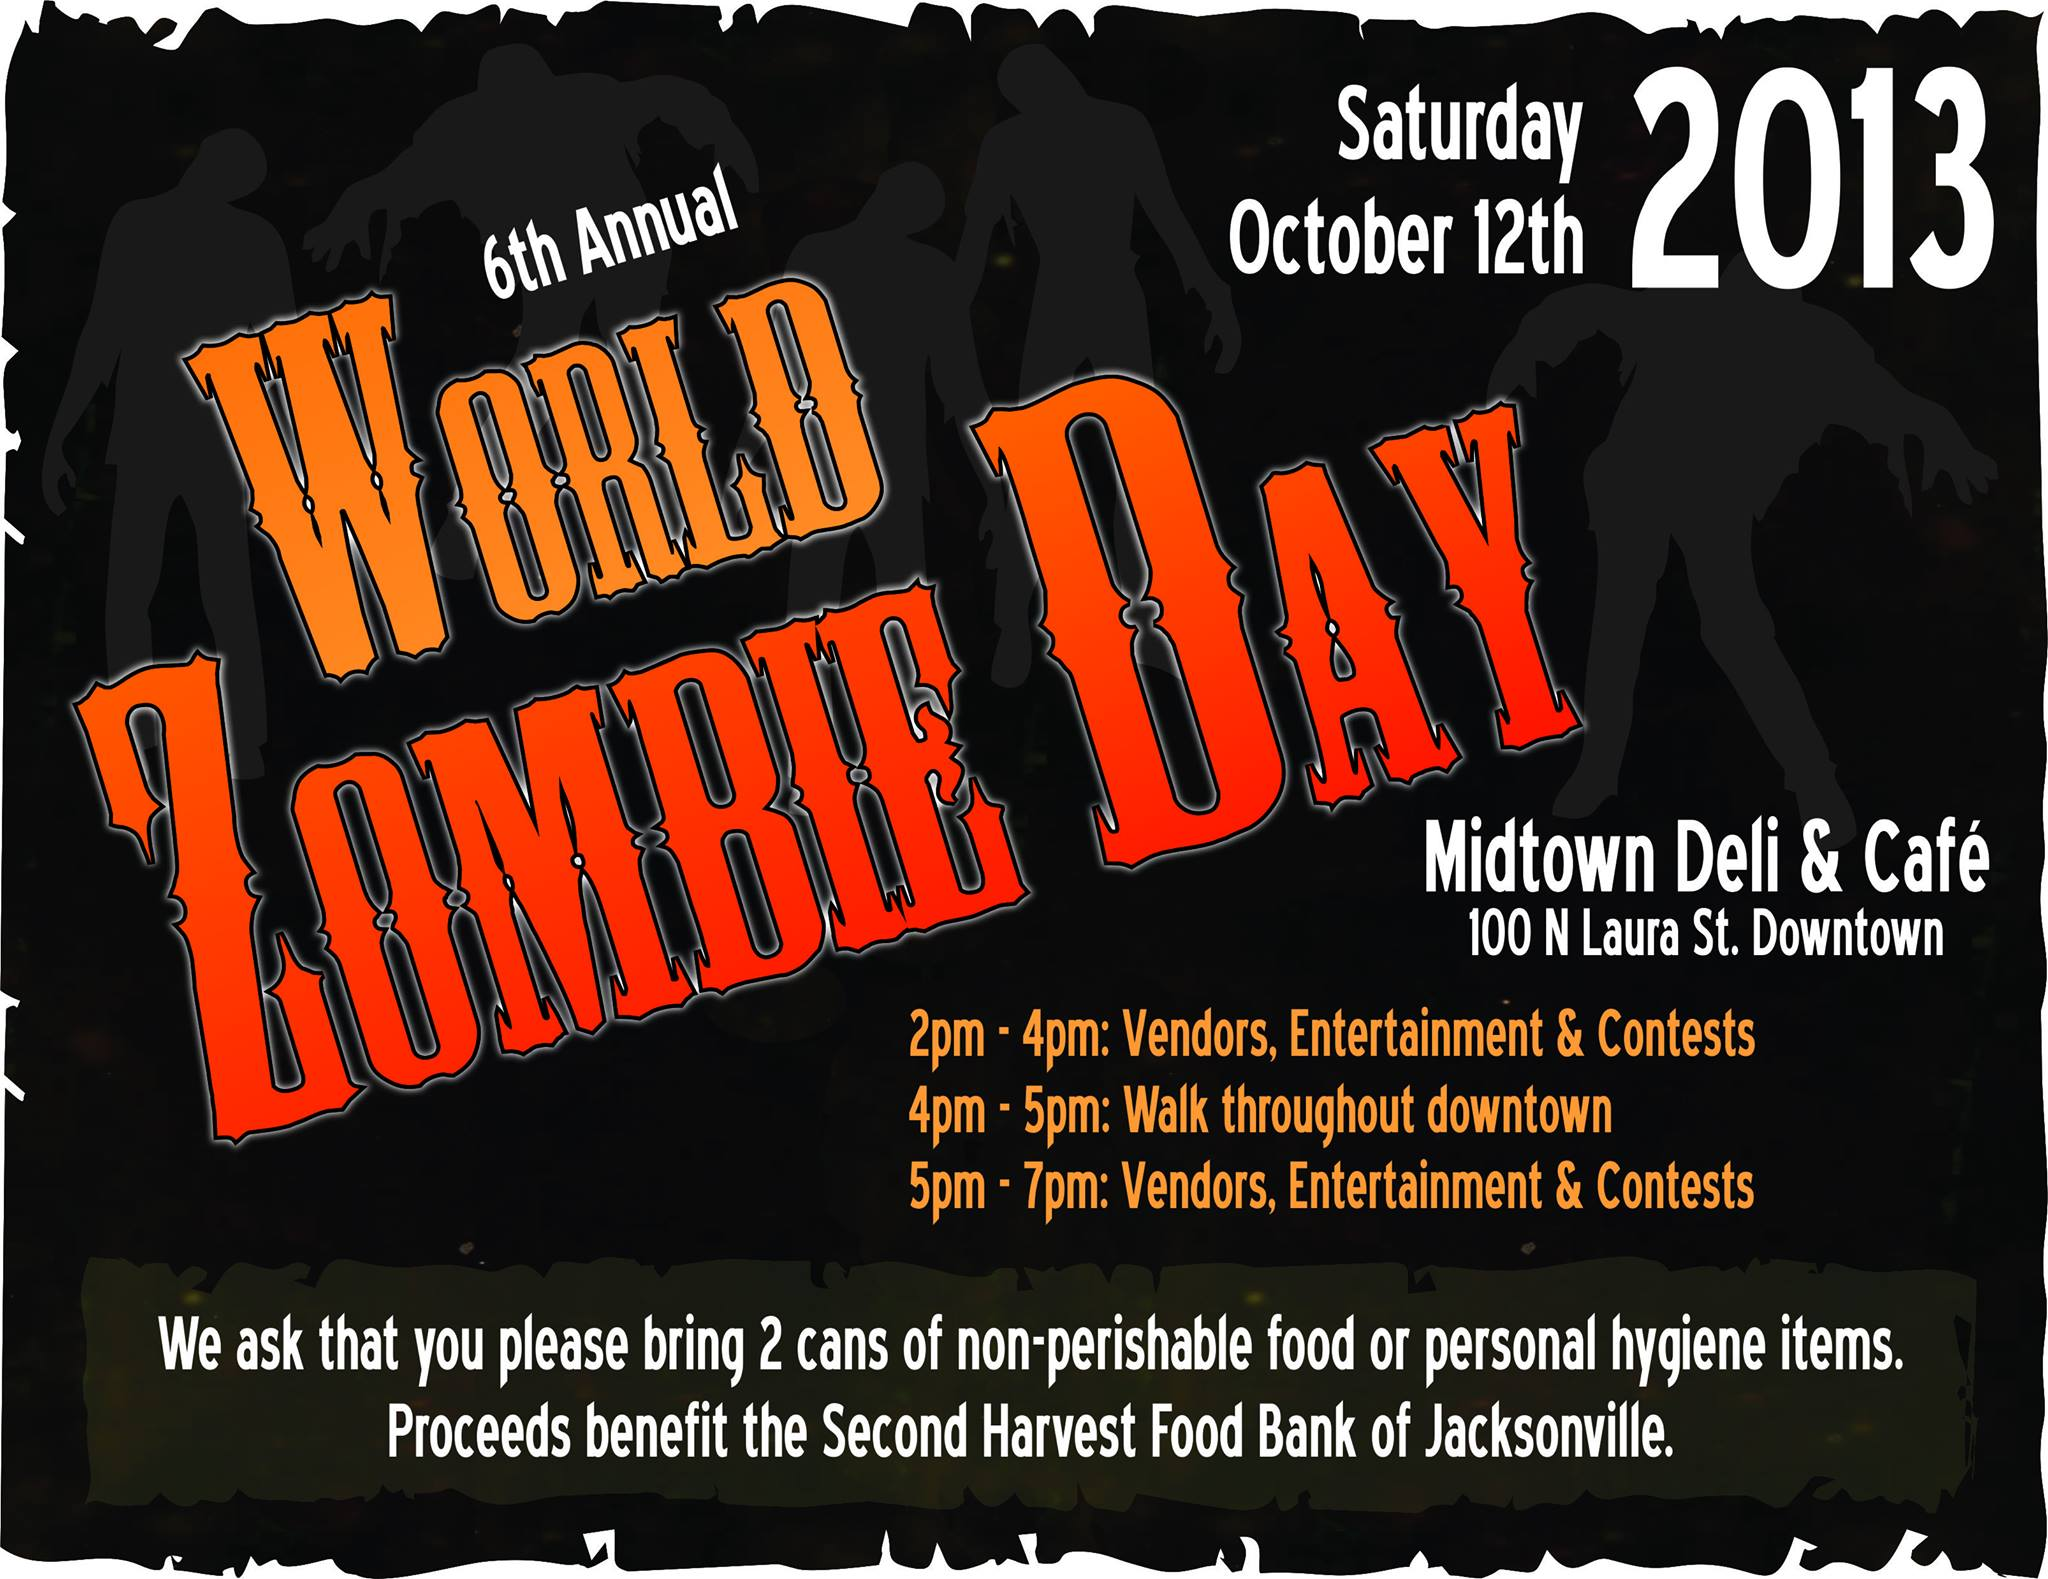 World Zombie Day 2013 Charity Walk